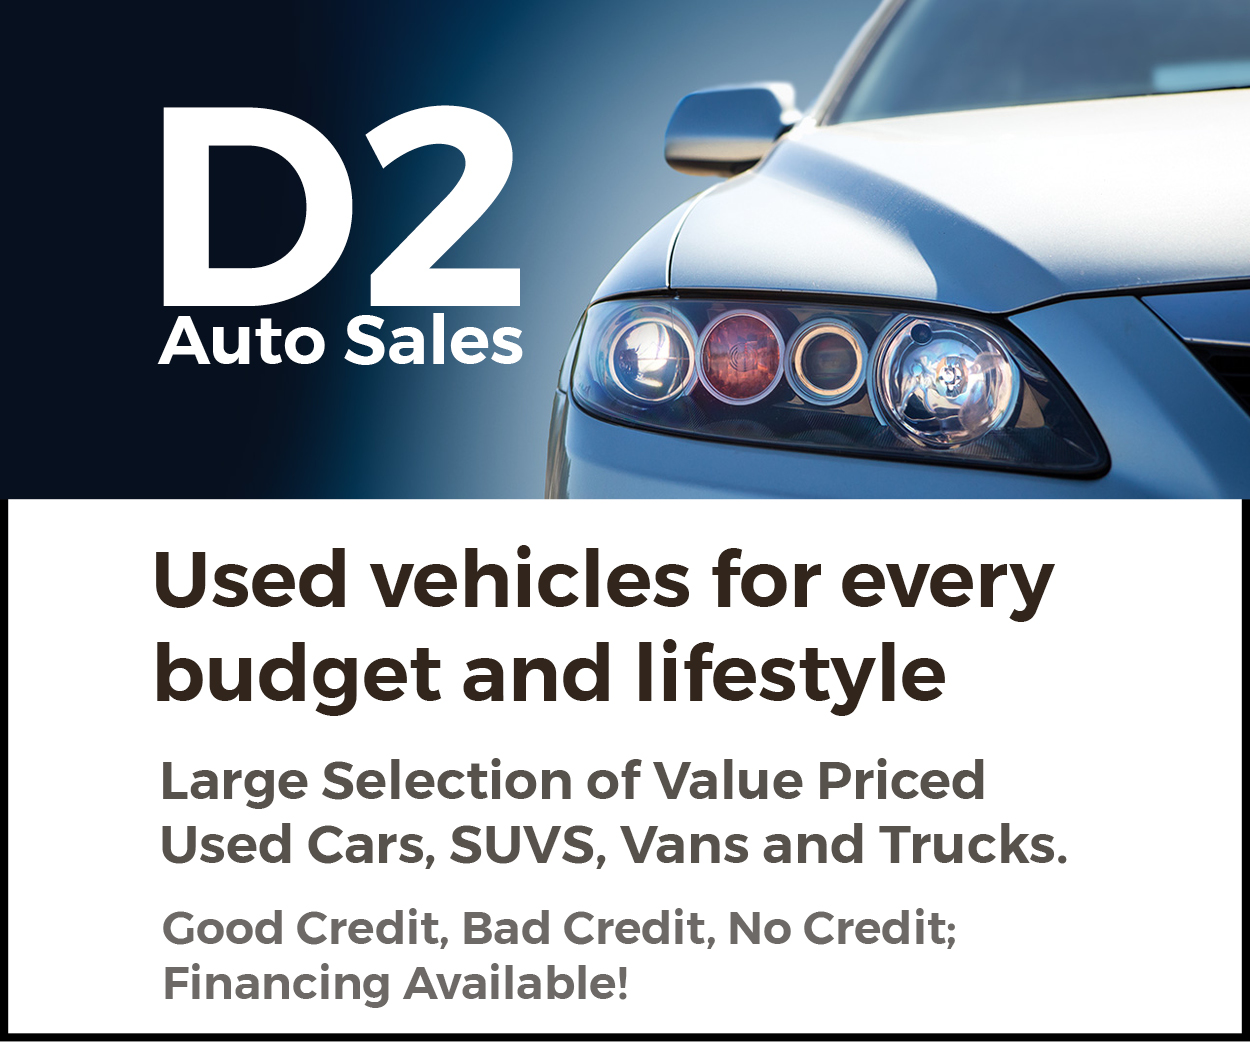 More from D2 Auto Sales